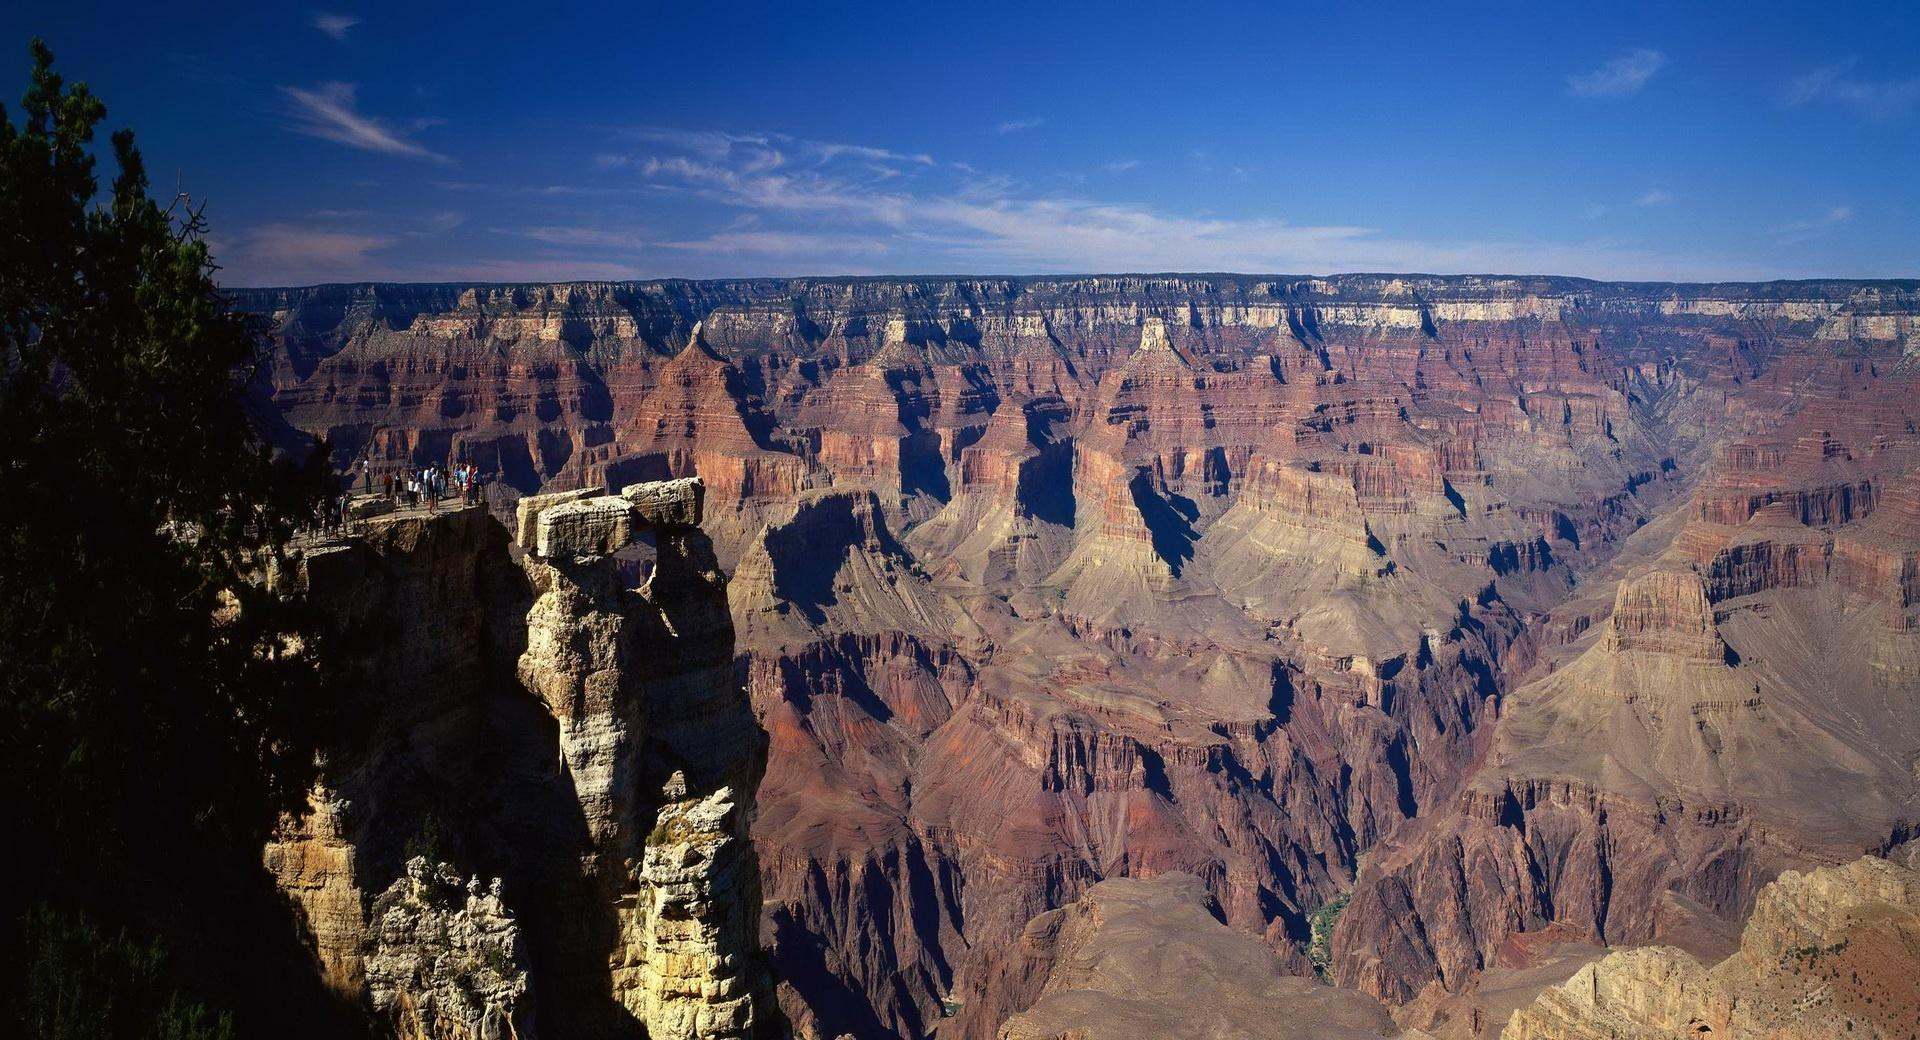 Canyon Panoramic View wallpapers HD quality